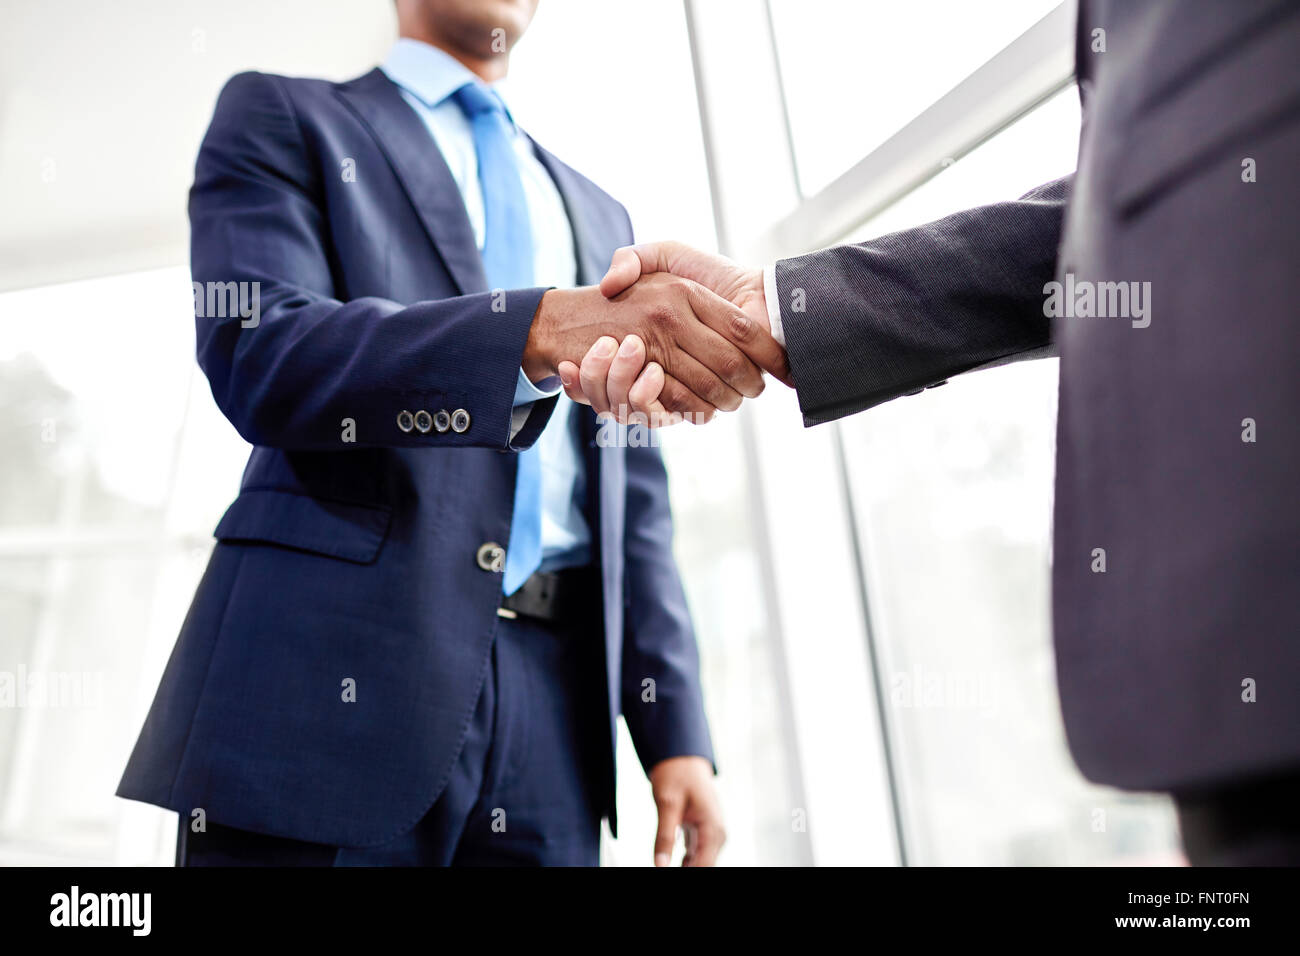 Handshake of two business people in the office - Stock Image